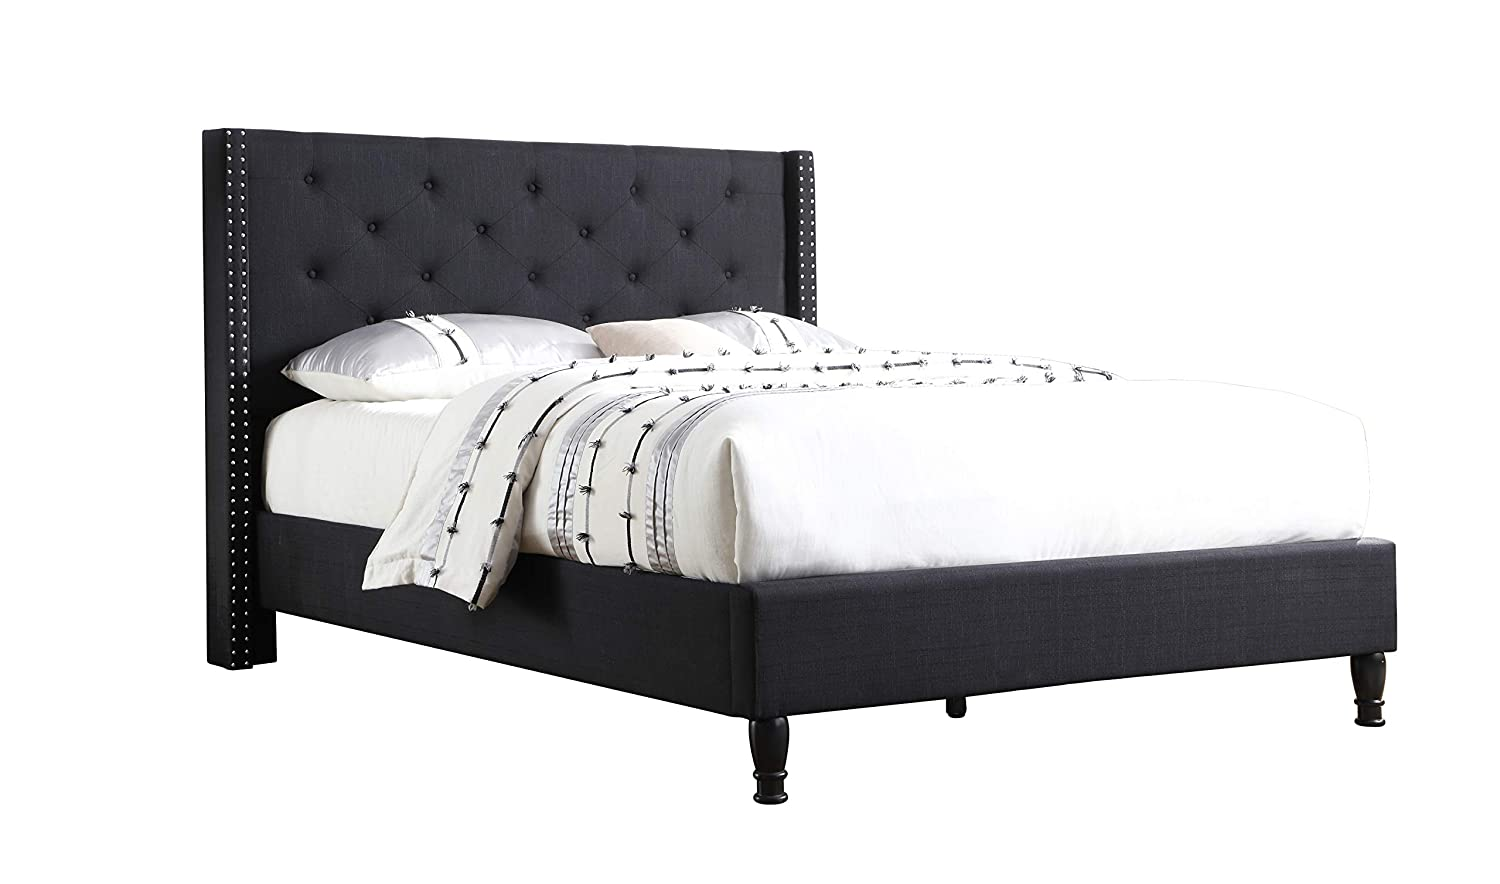 Life Home Premiere Classics Cloth Black Linen 51 Tall Headboard Platform Bed with Slats Queen – Complete Bed 5 Year Warranty Included